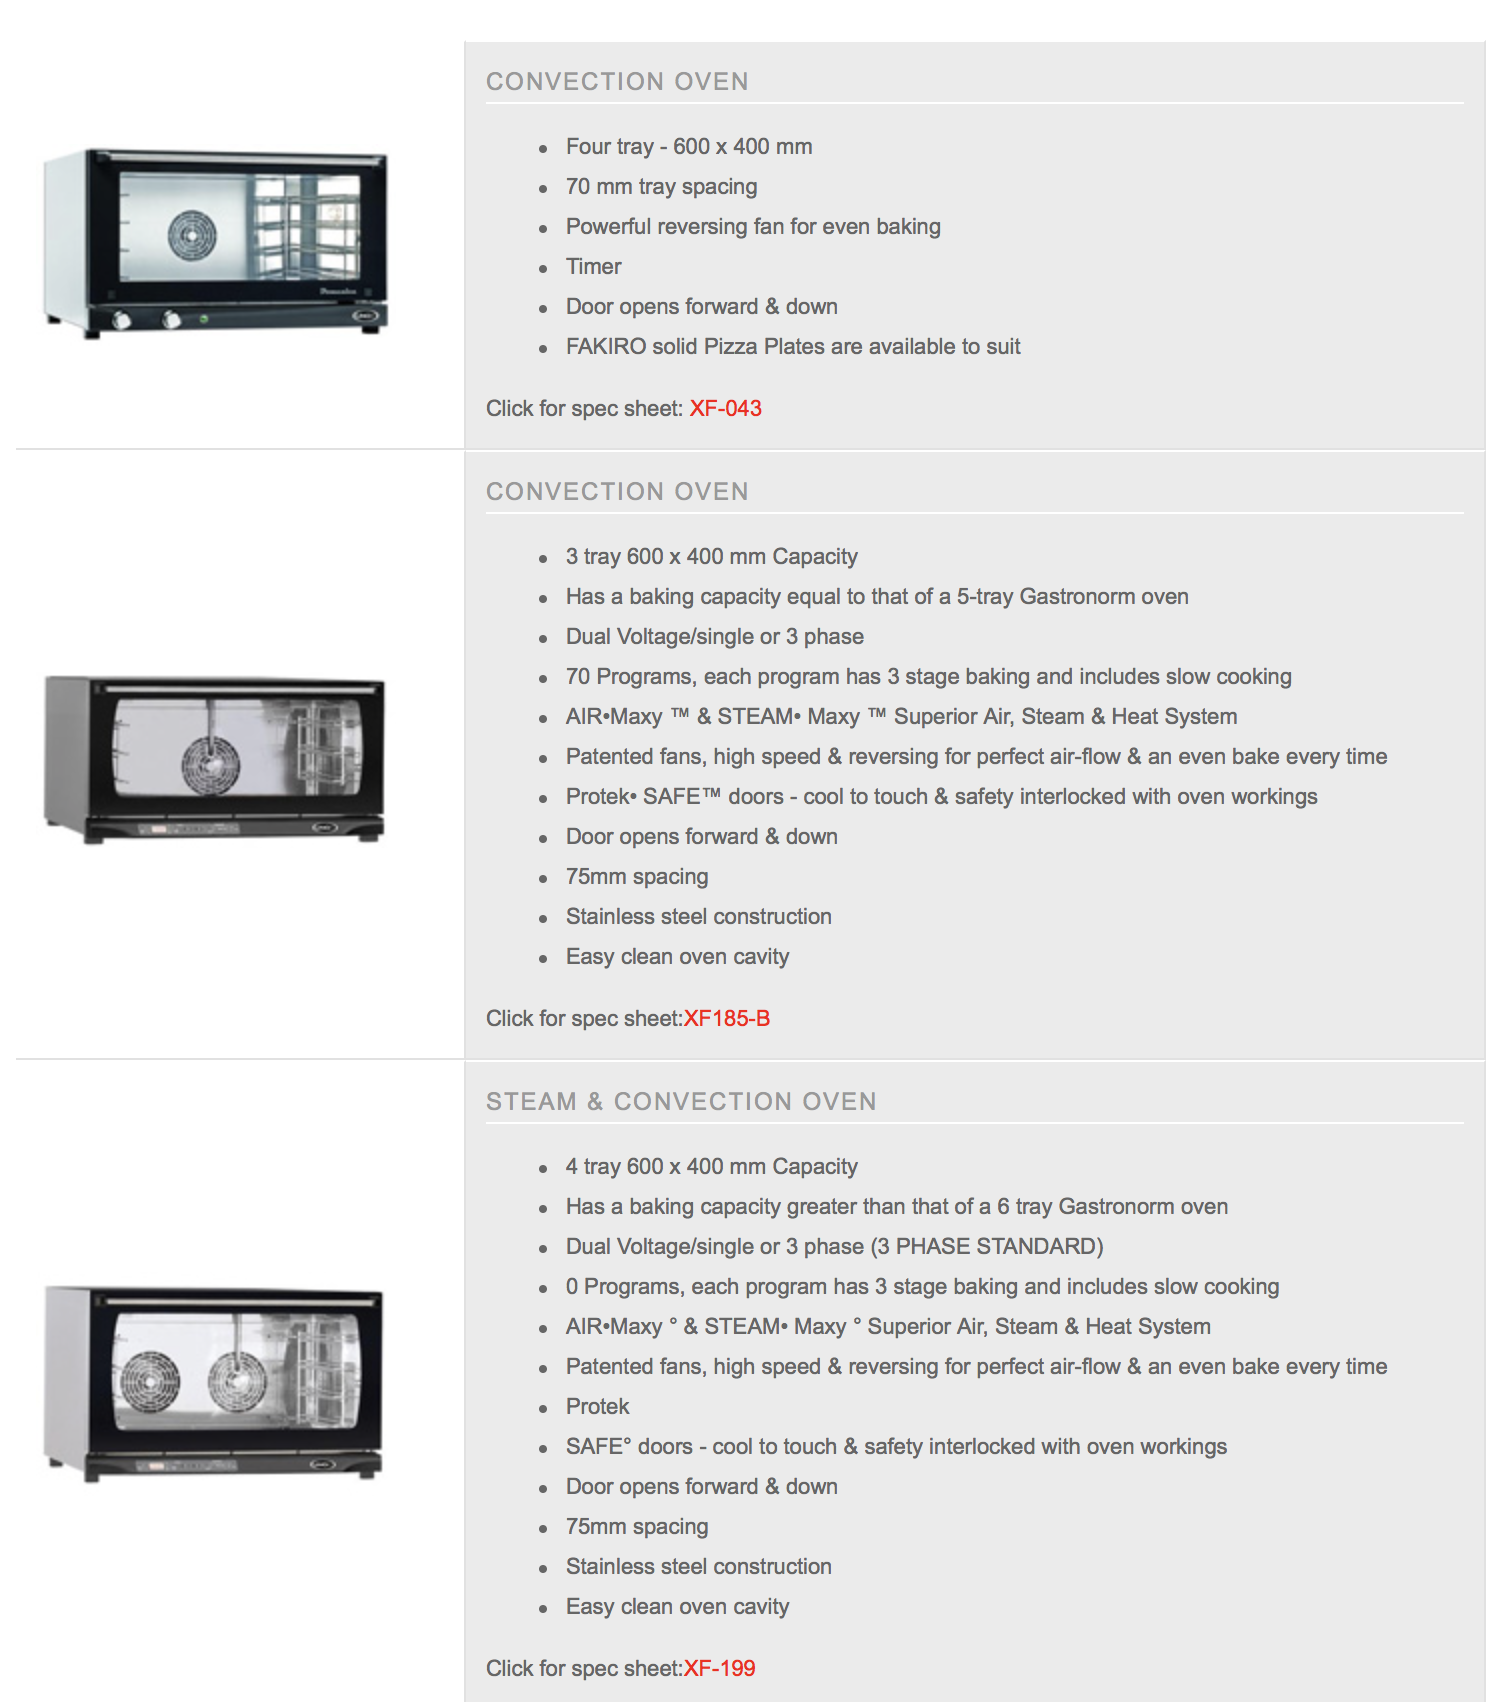 Unox Convection Ovens